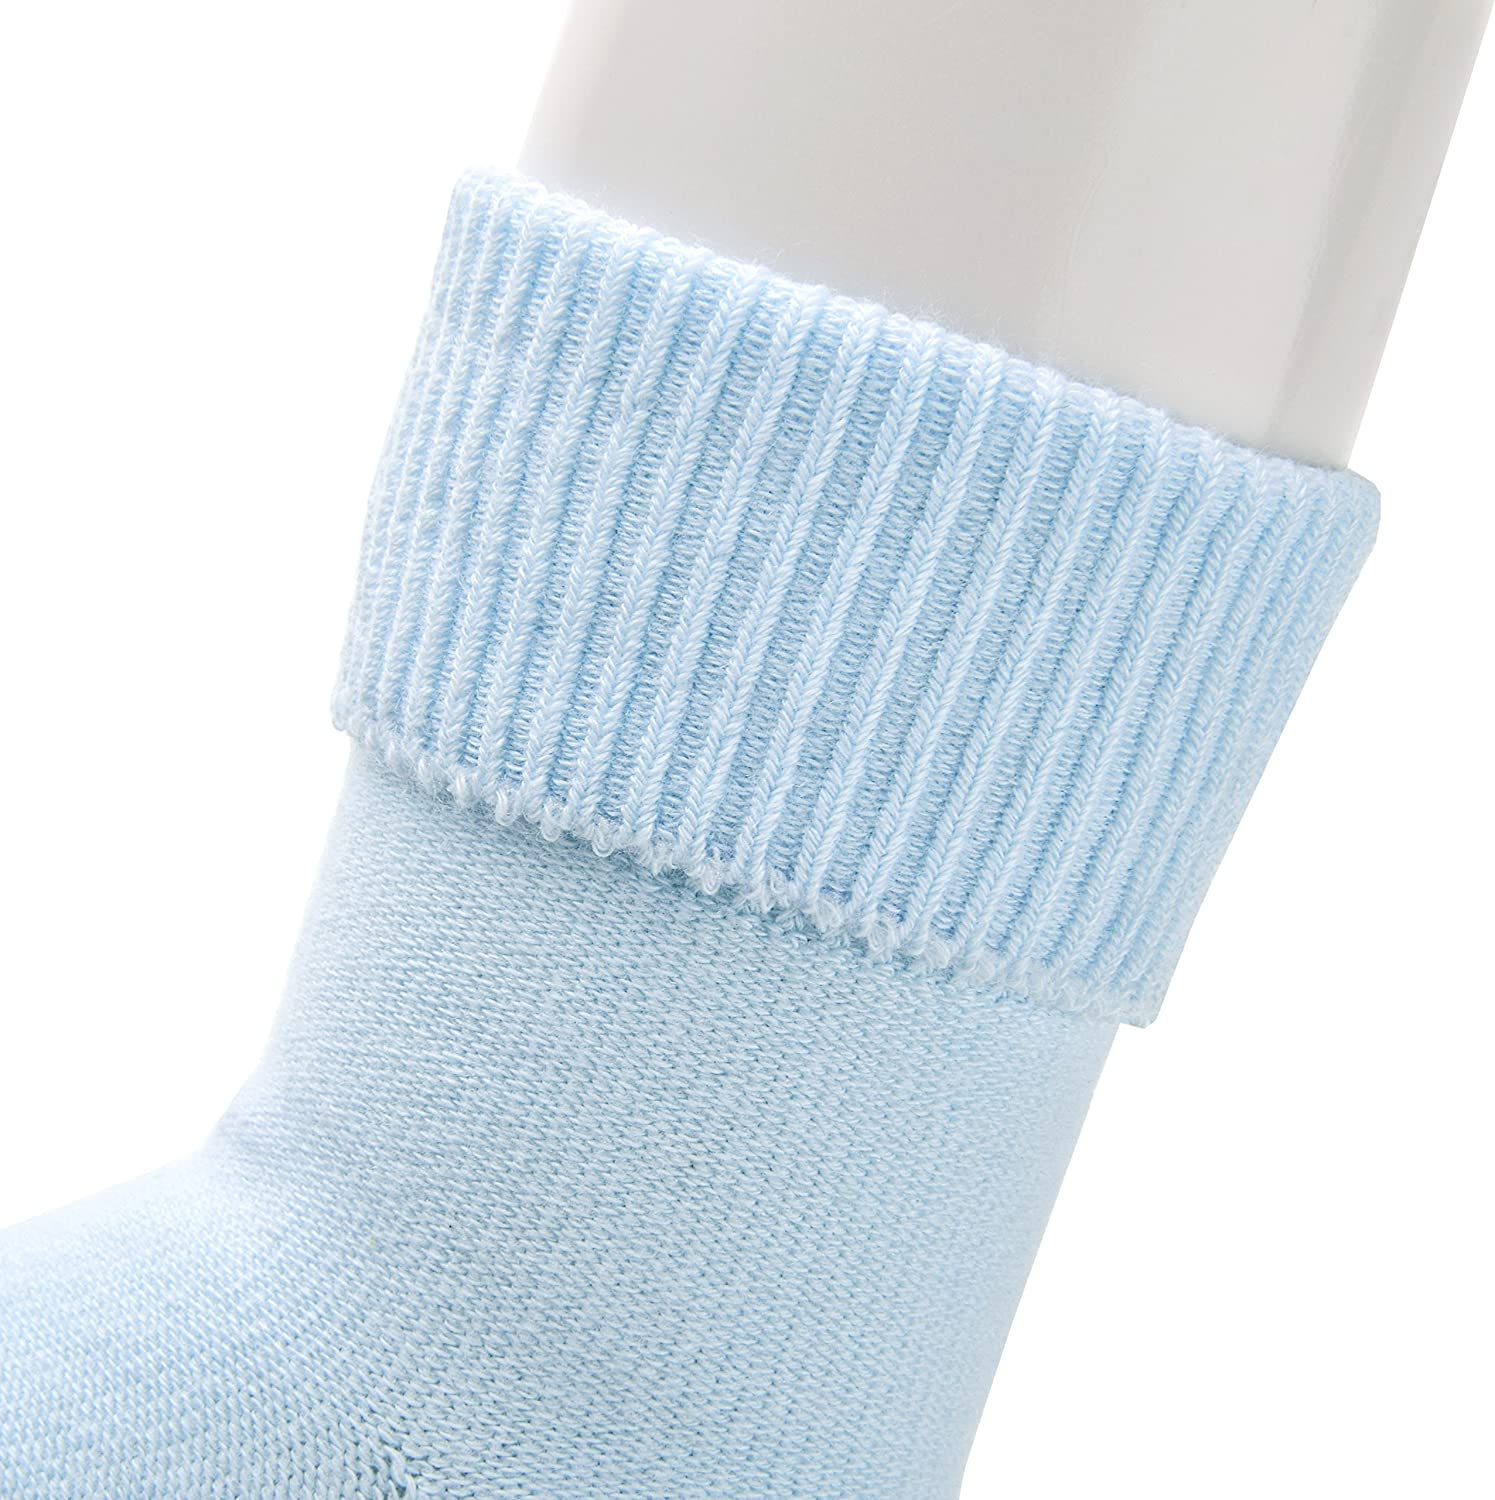 Aurora Wings 6 Pairs Unisex-Baby Cotton Socks Solid Color Socks Toddlers Socks 6-12 Months, Basic Color//White+Lavender